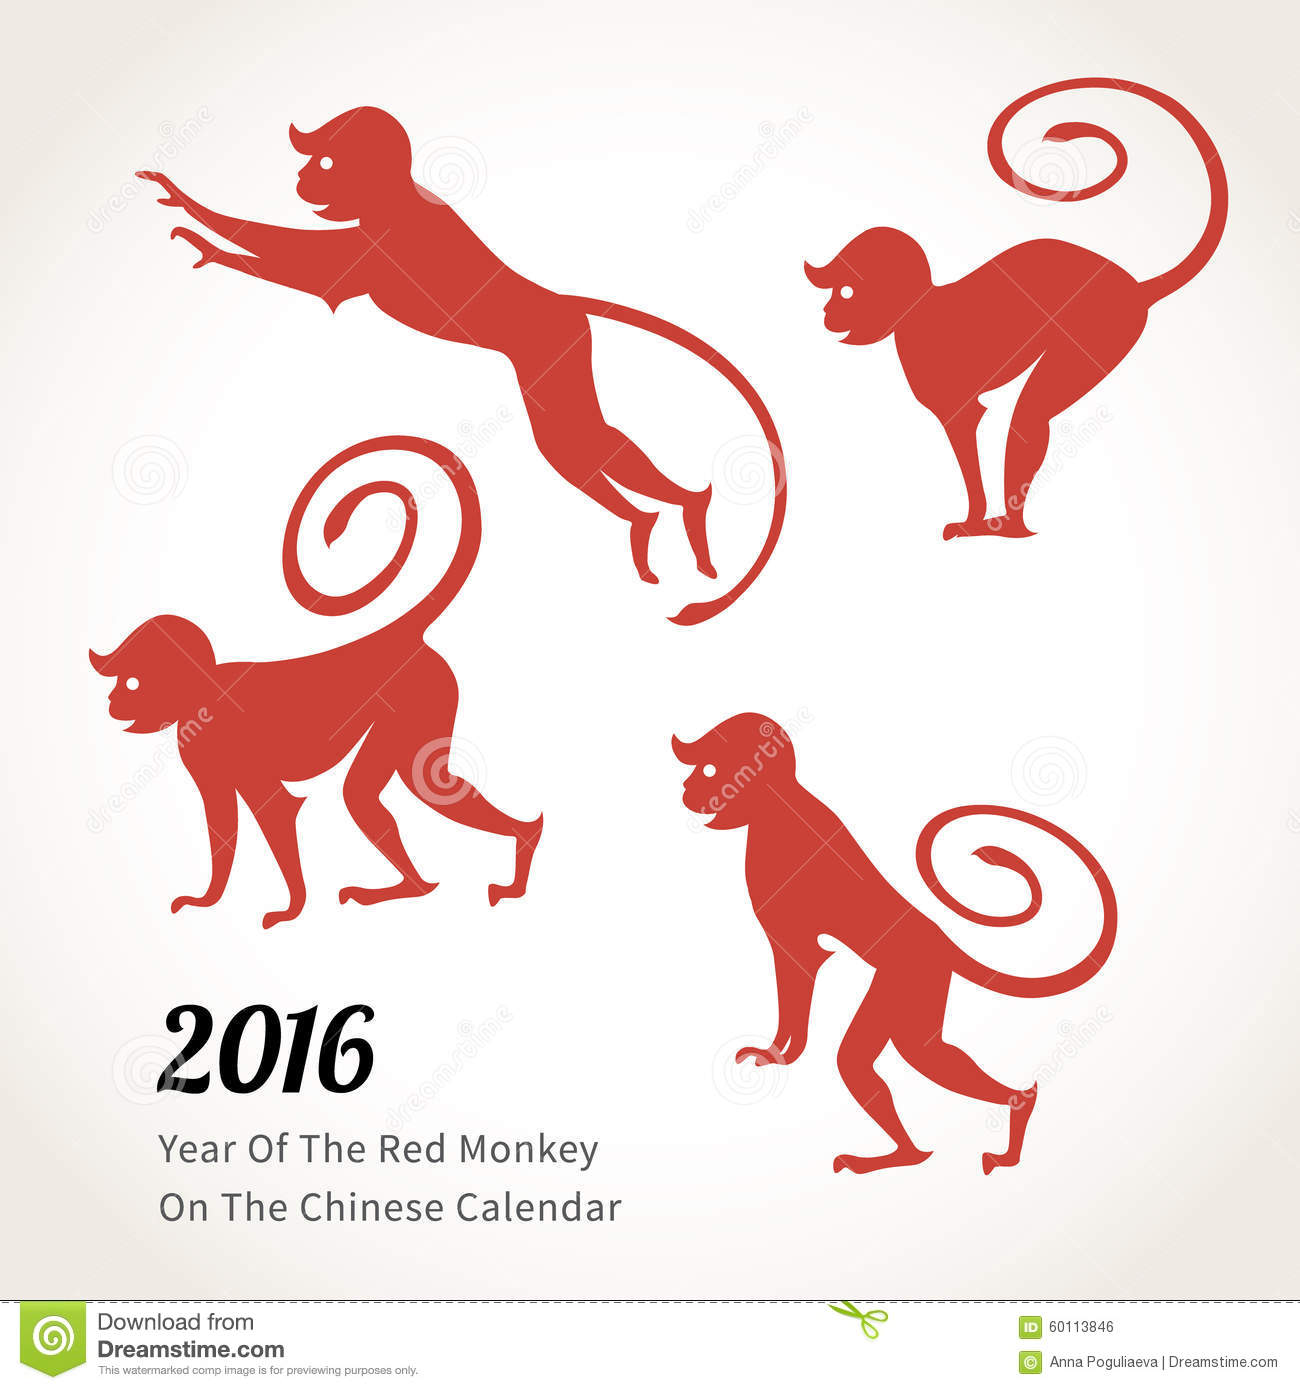 Chinese Calendar Illustration : Monkey symbol of on the chinese calendar stock